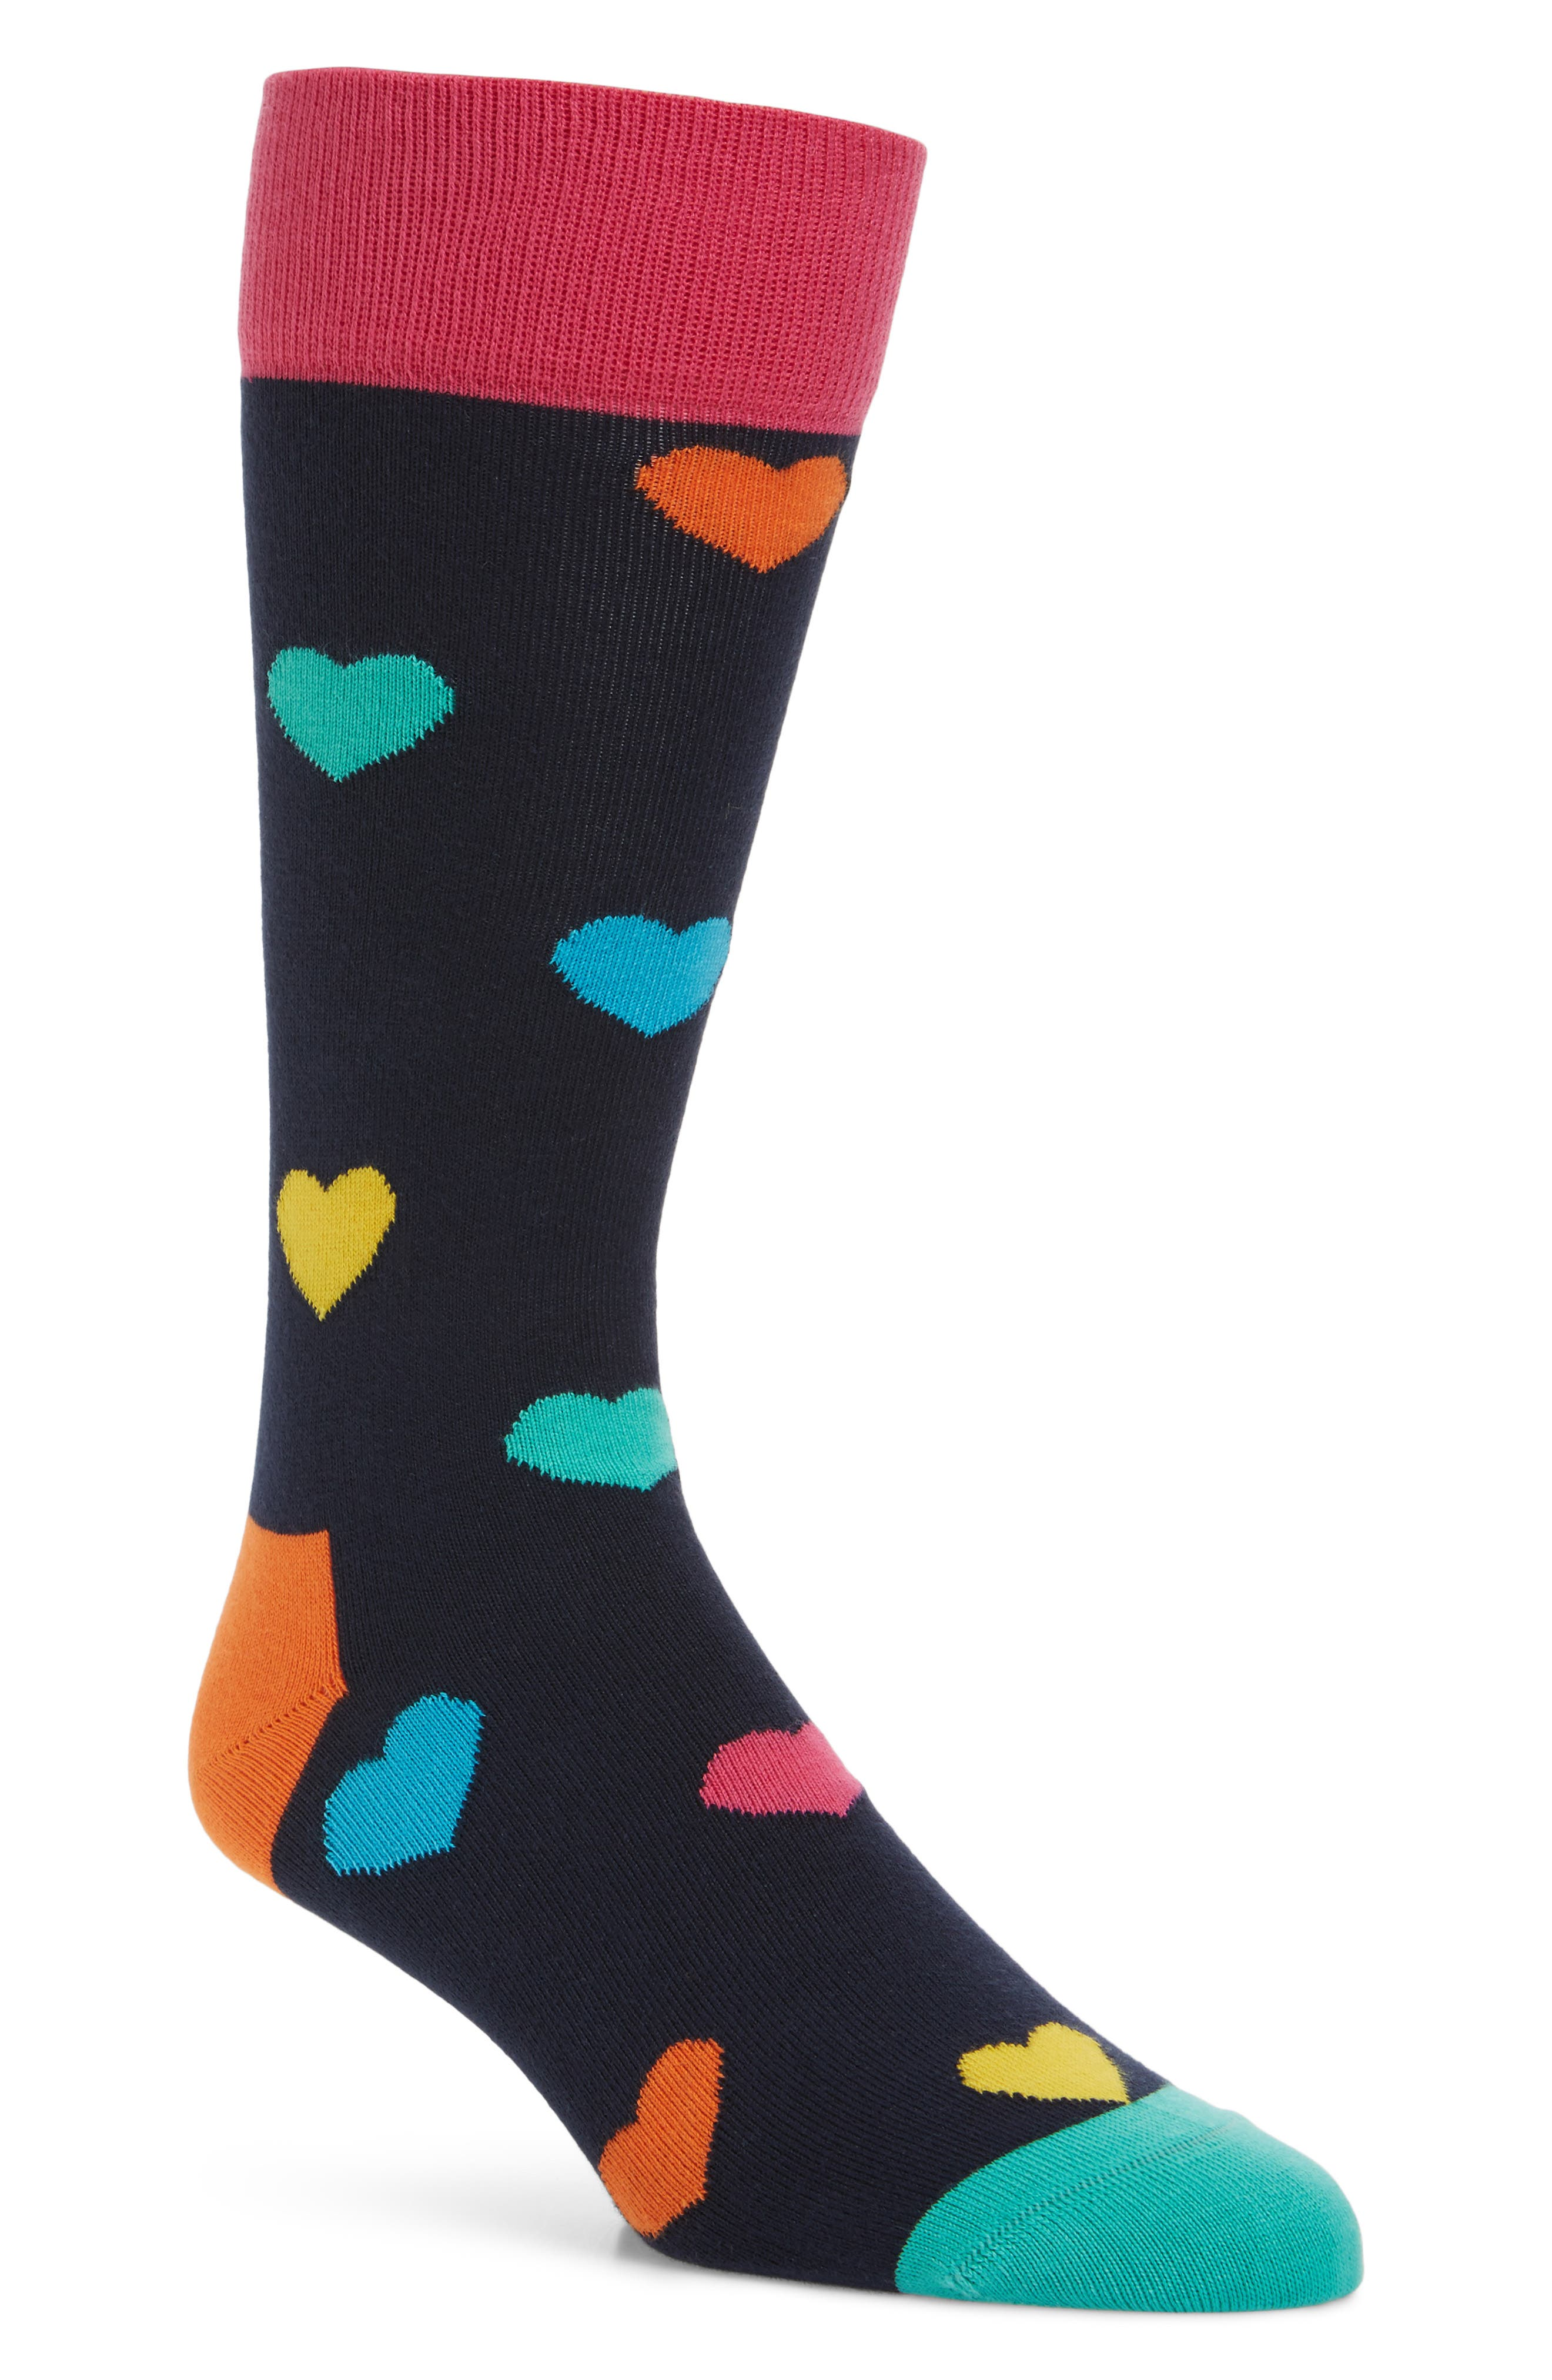 Heart Pattern Socks,                         Main,                         color, 470